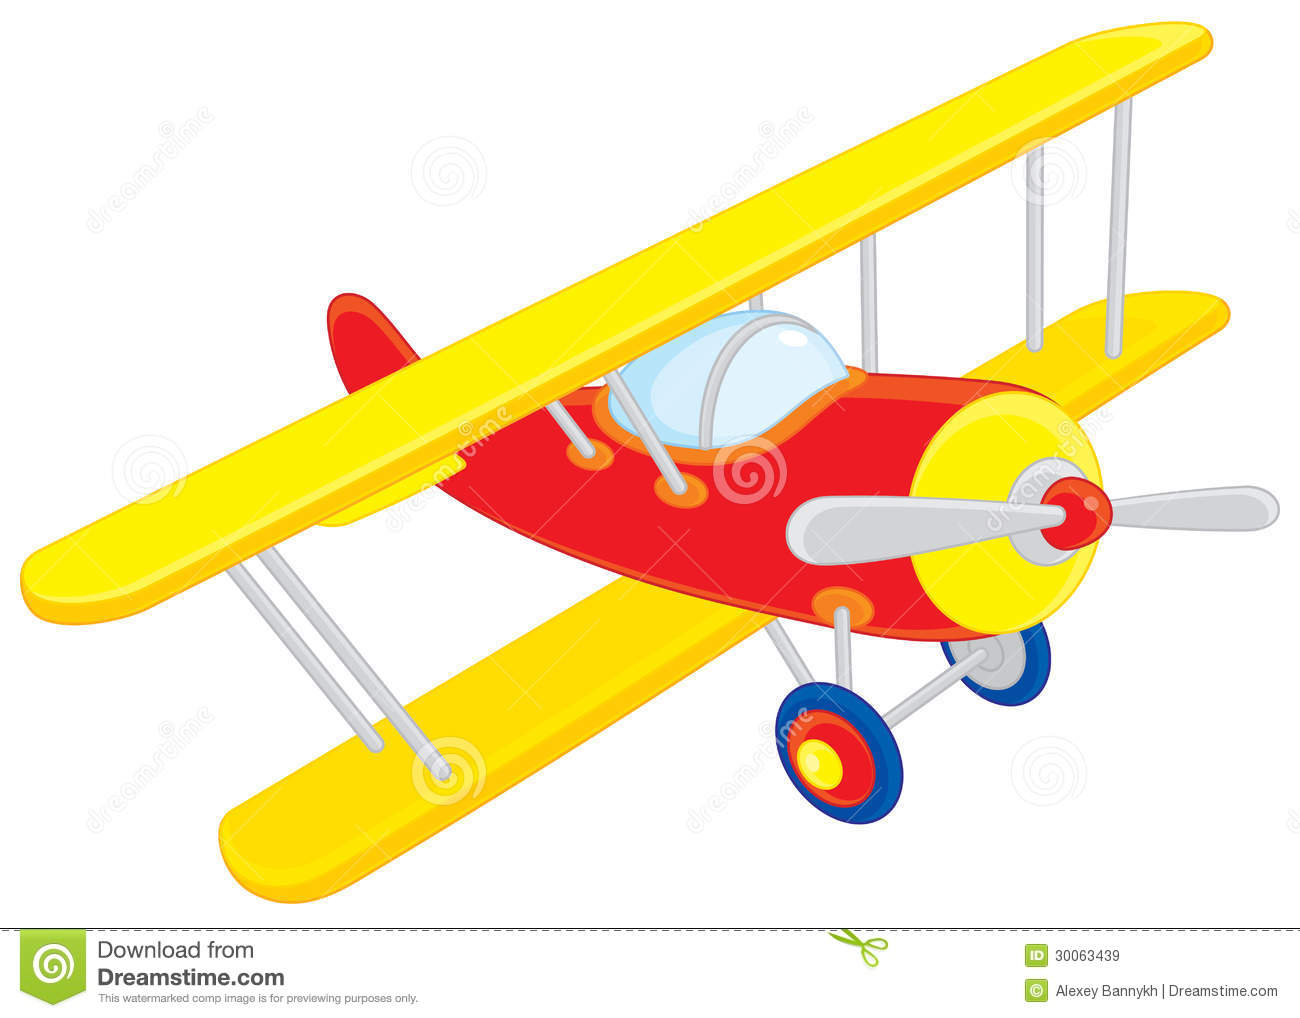 plane stock vector illustration of drawing clip aircraft 30063439 rh dreamstime com airplane clip art free download airplane clip art free images